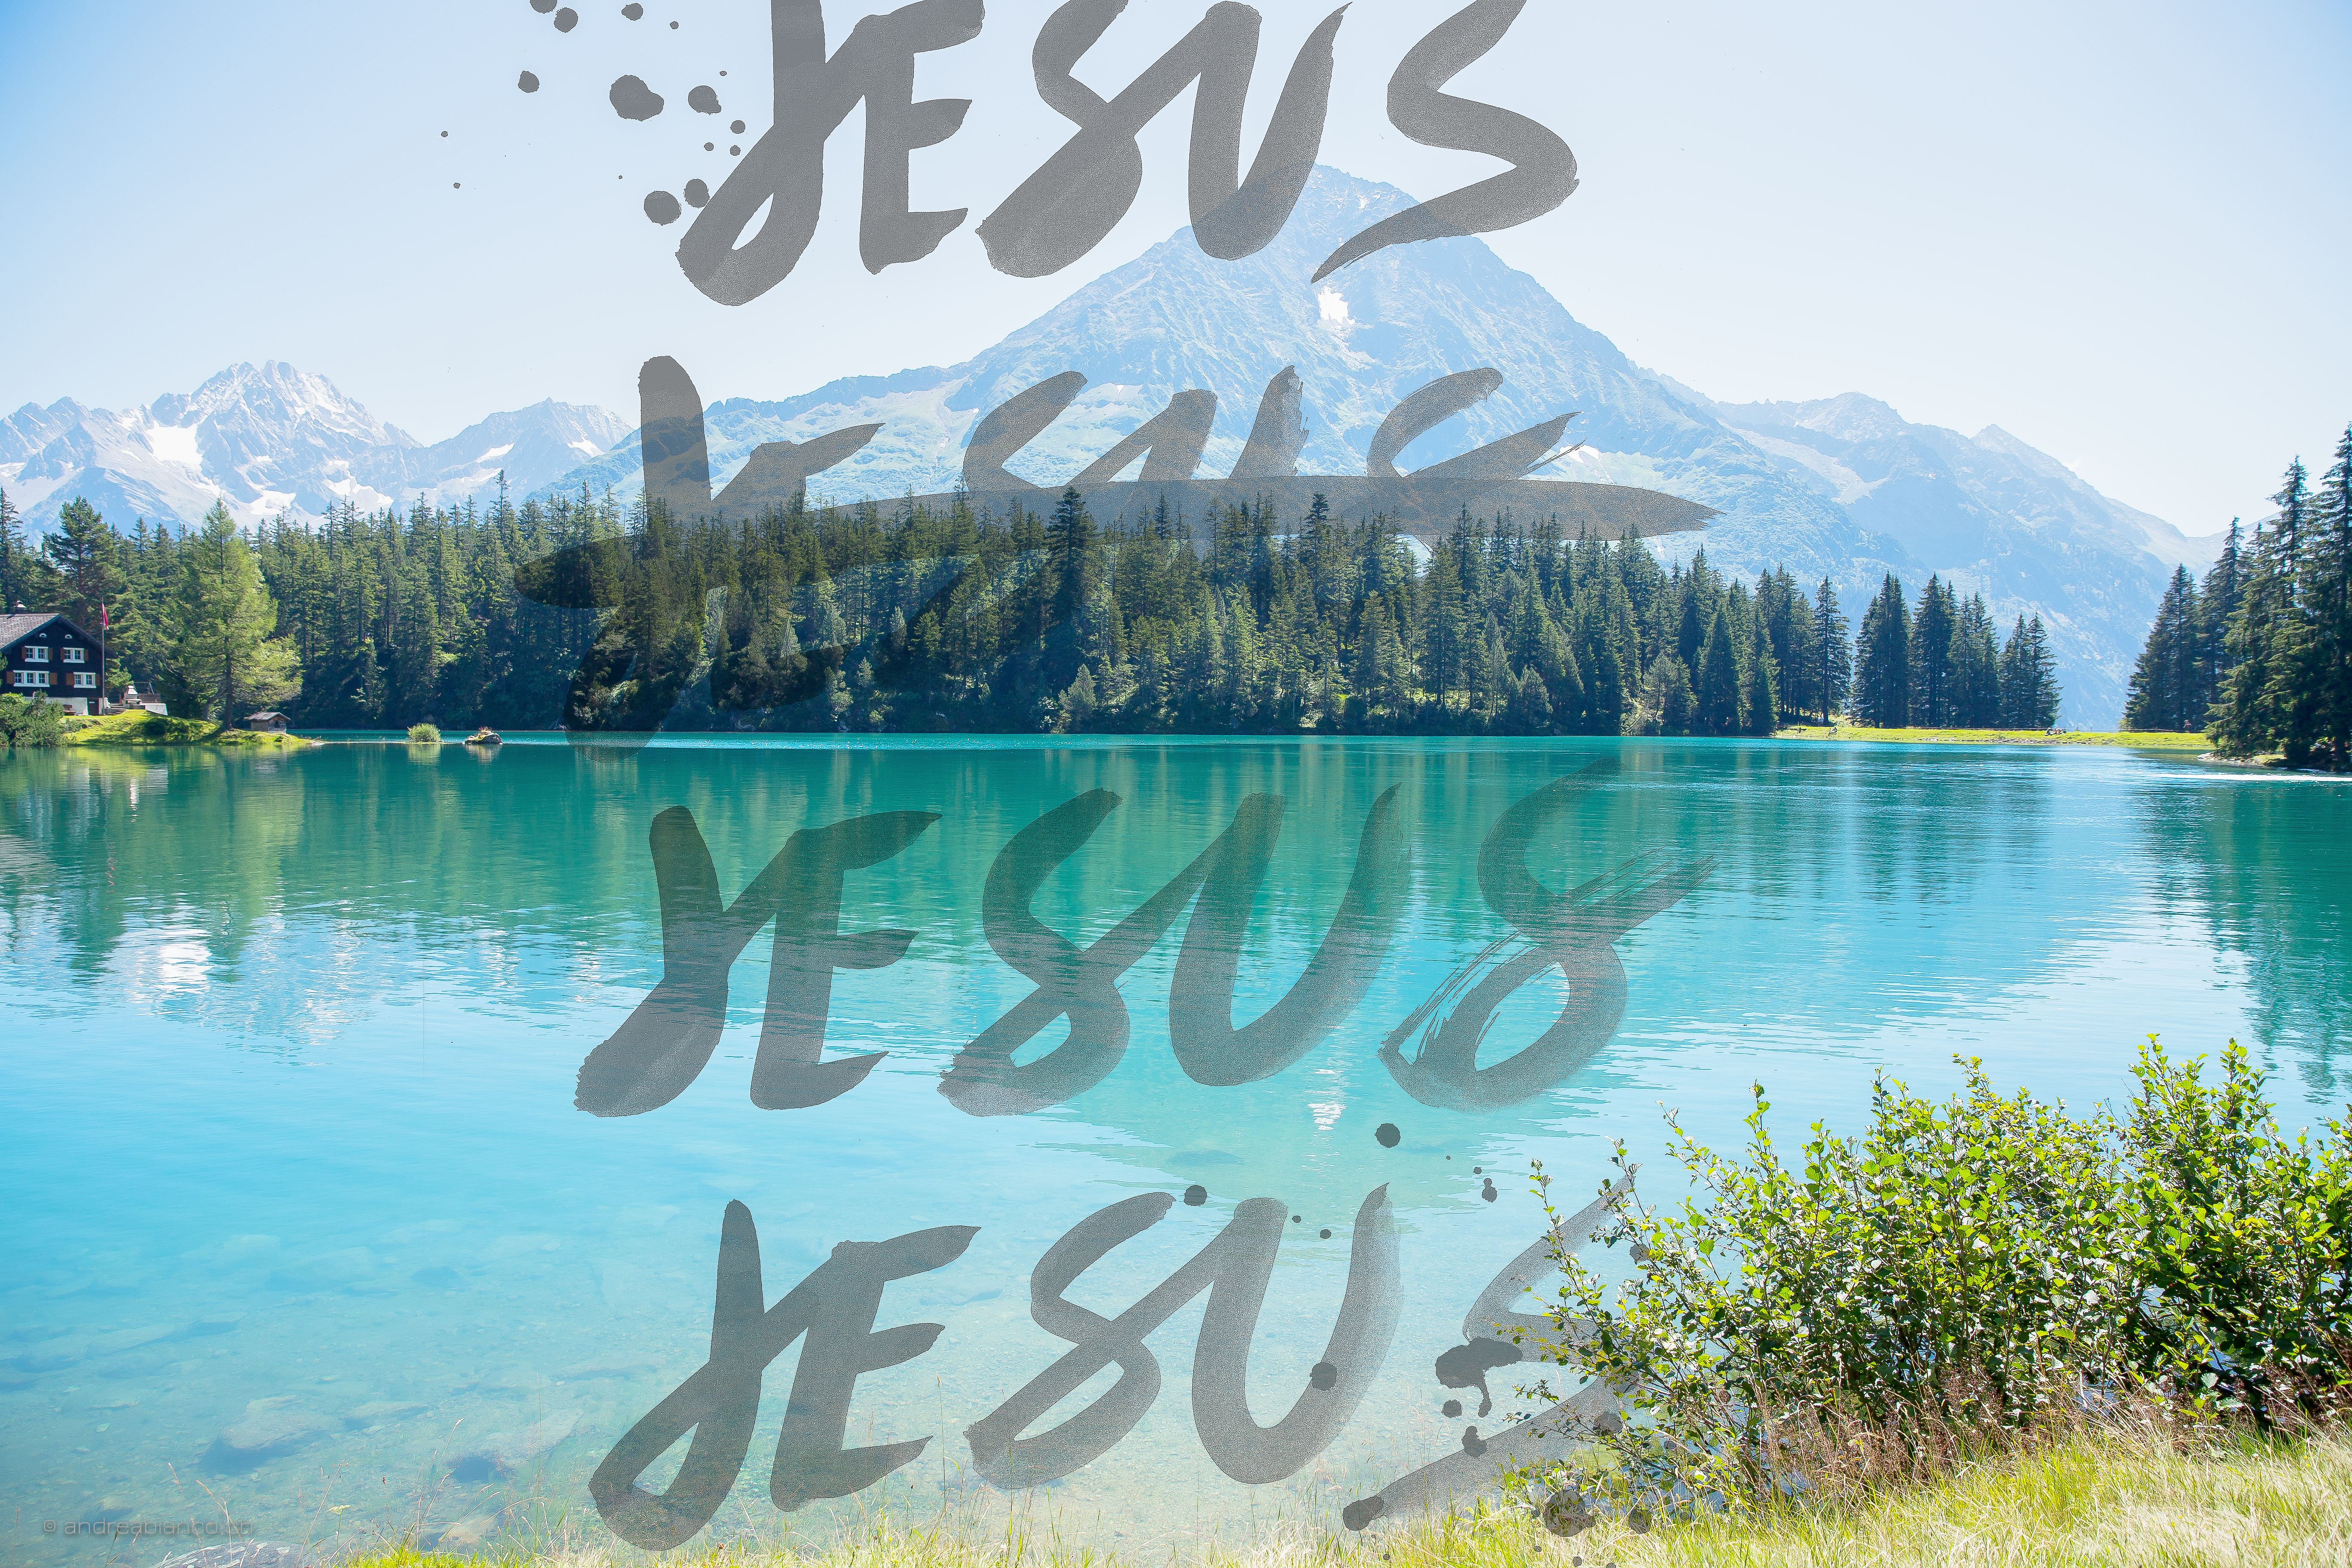 #Jesus - only